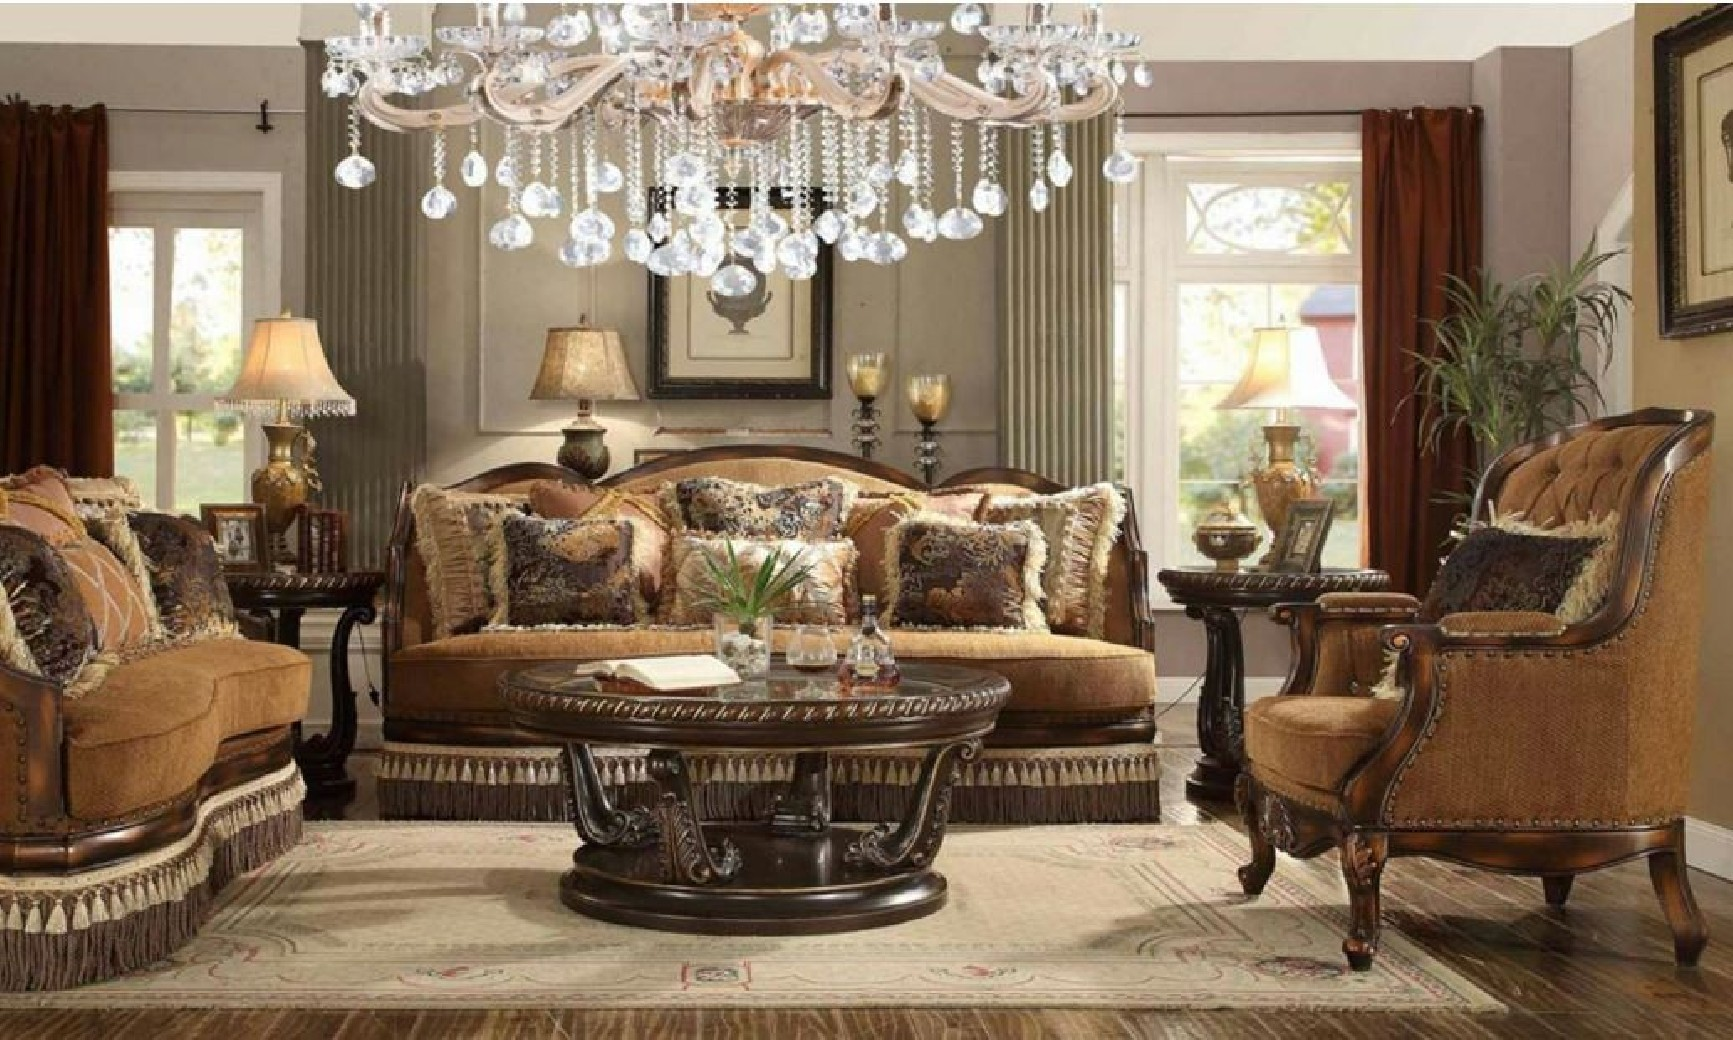 Hd 9344 Homey Design Upholstery Living Room Set Victorian